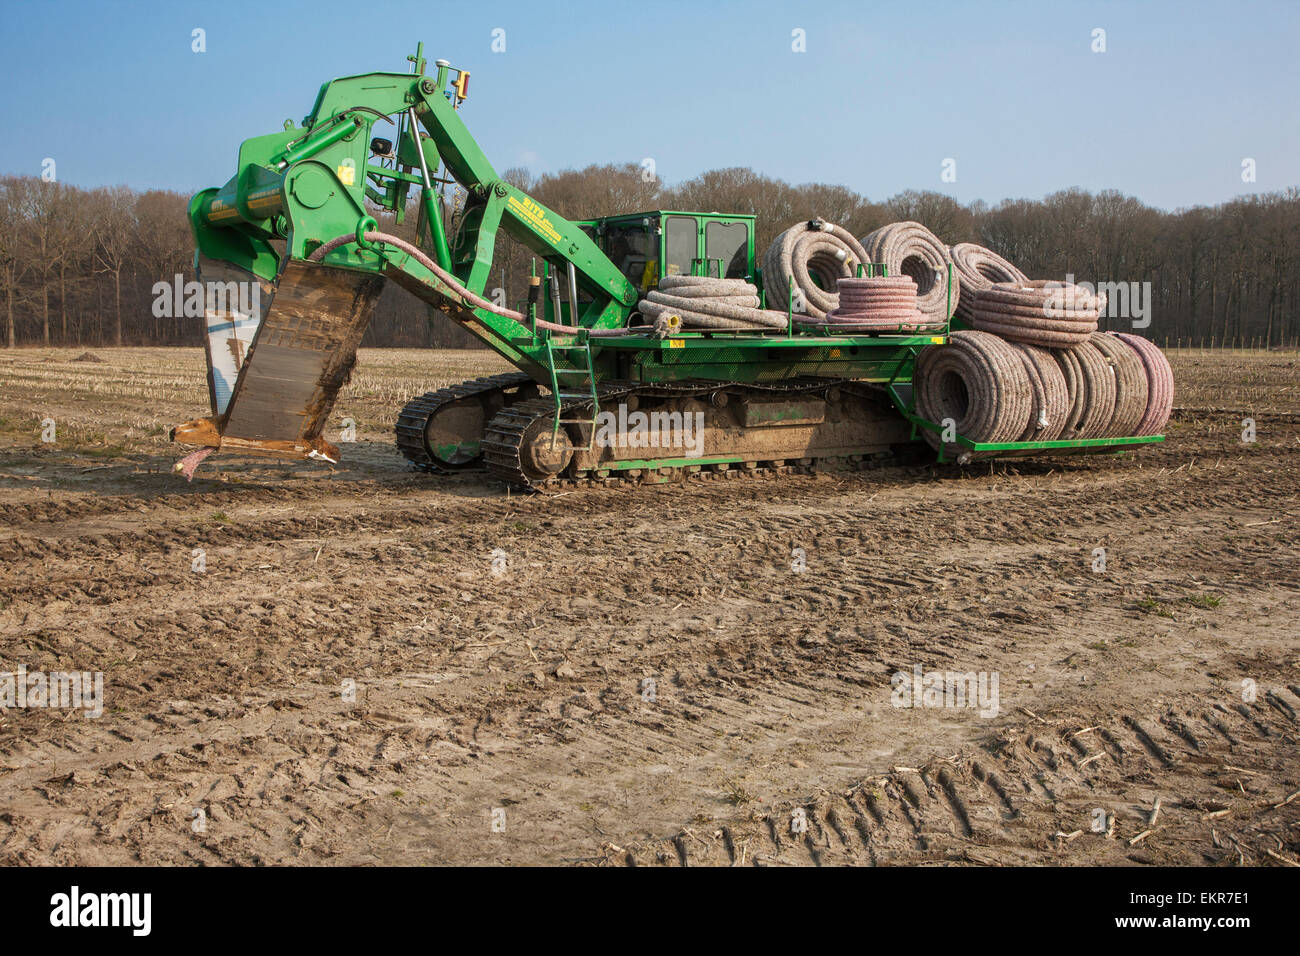 Drainage trencher / tile plow with load of drainage pipes working on farmland - Stock Image